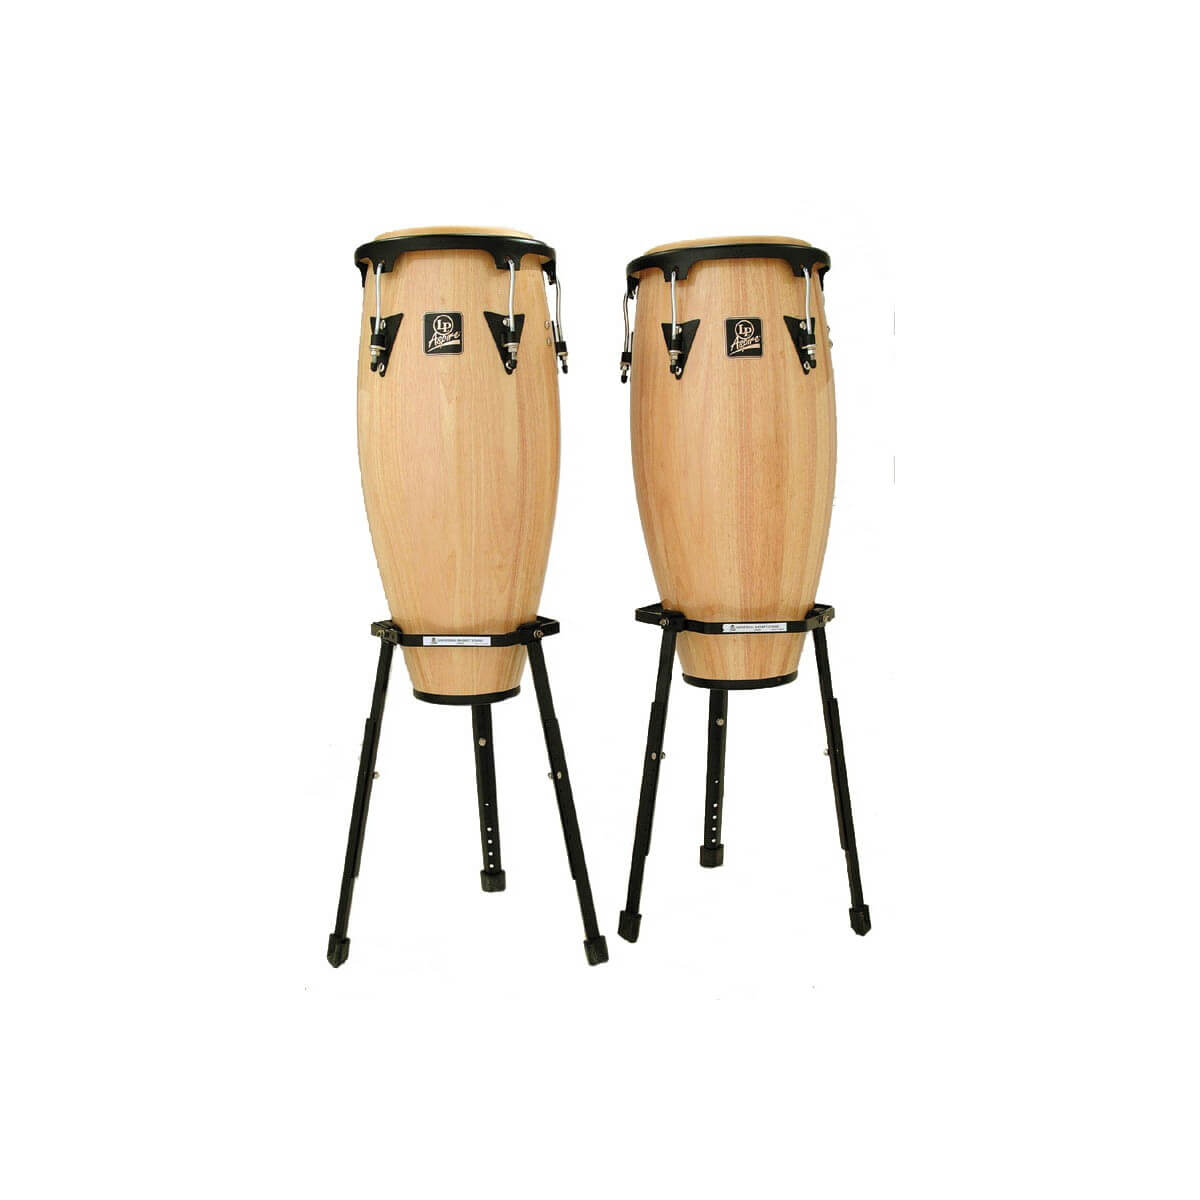 Set Congas Latin Percussion Lpa646B 10-11 Natural